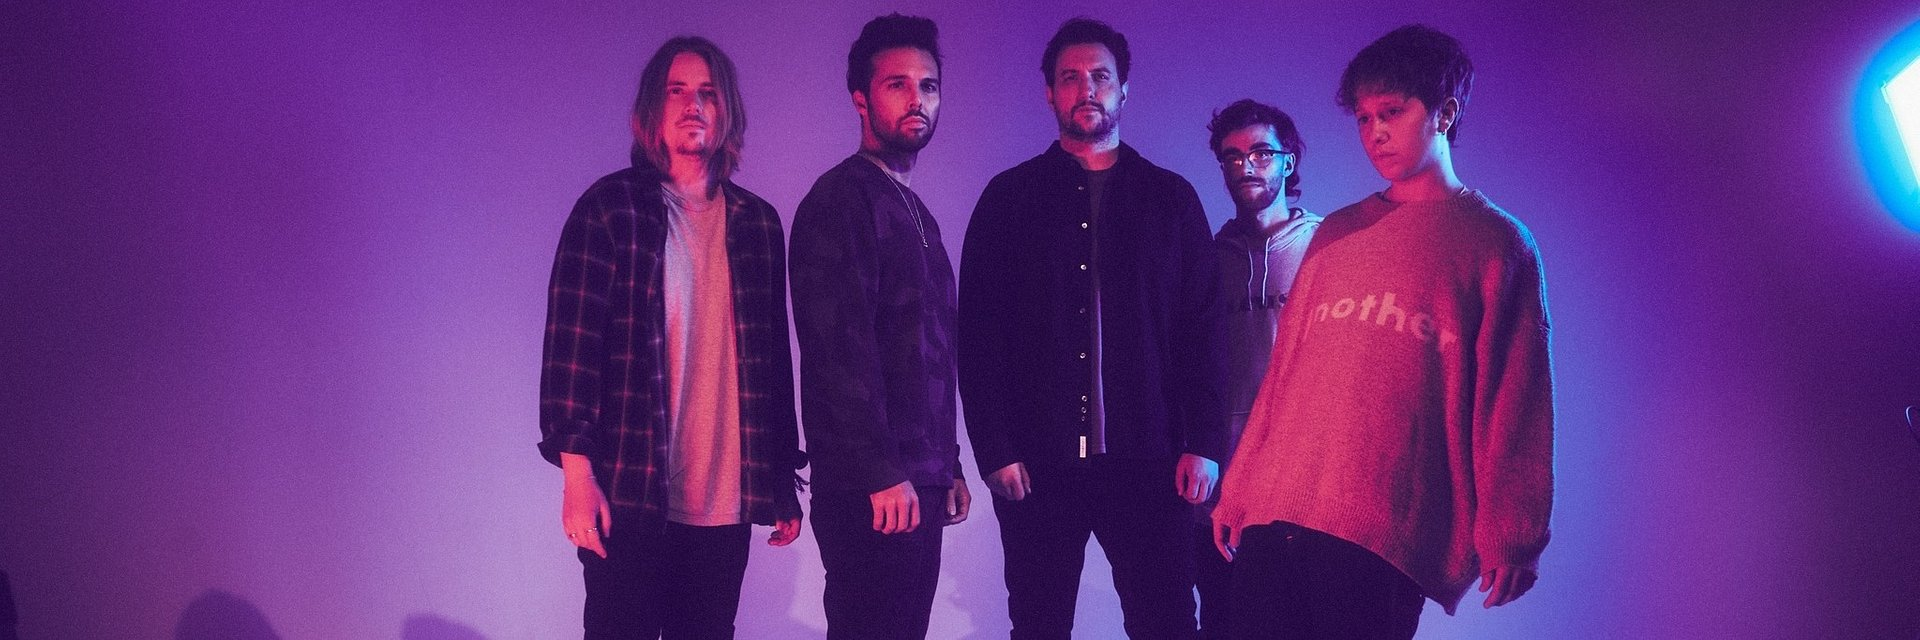 """Nothing But Thieves z EP-ką """"Moral Panic II"""""""